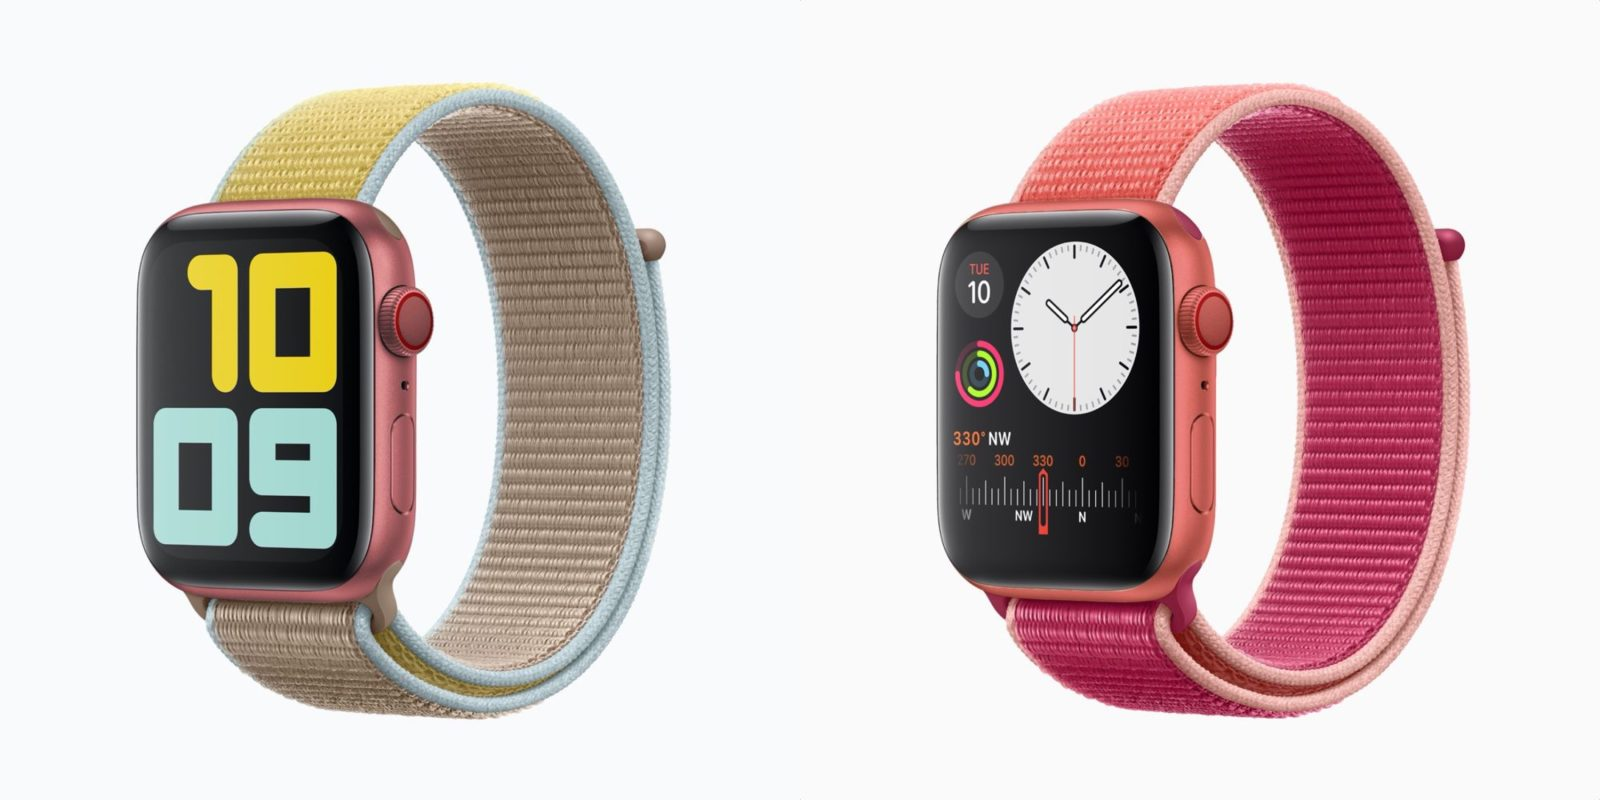 (RED) Apple Watch found in Apple database, could arrive next spring